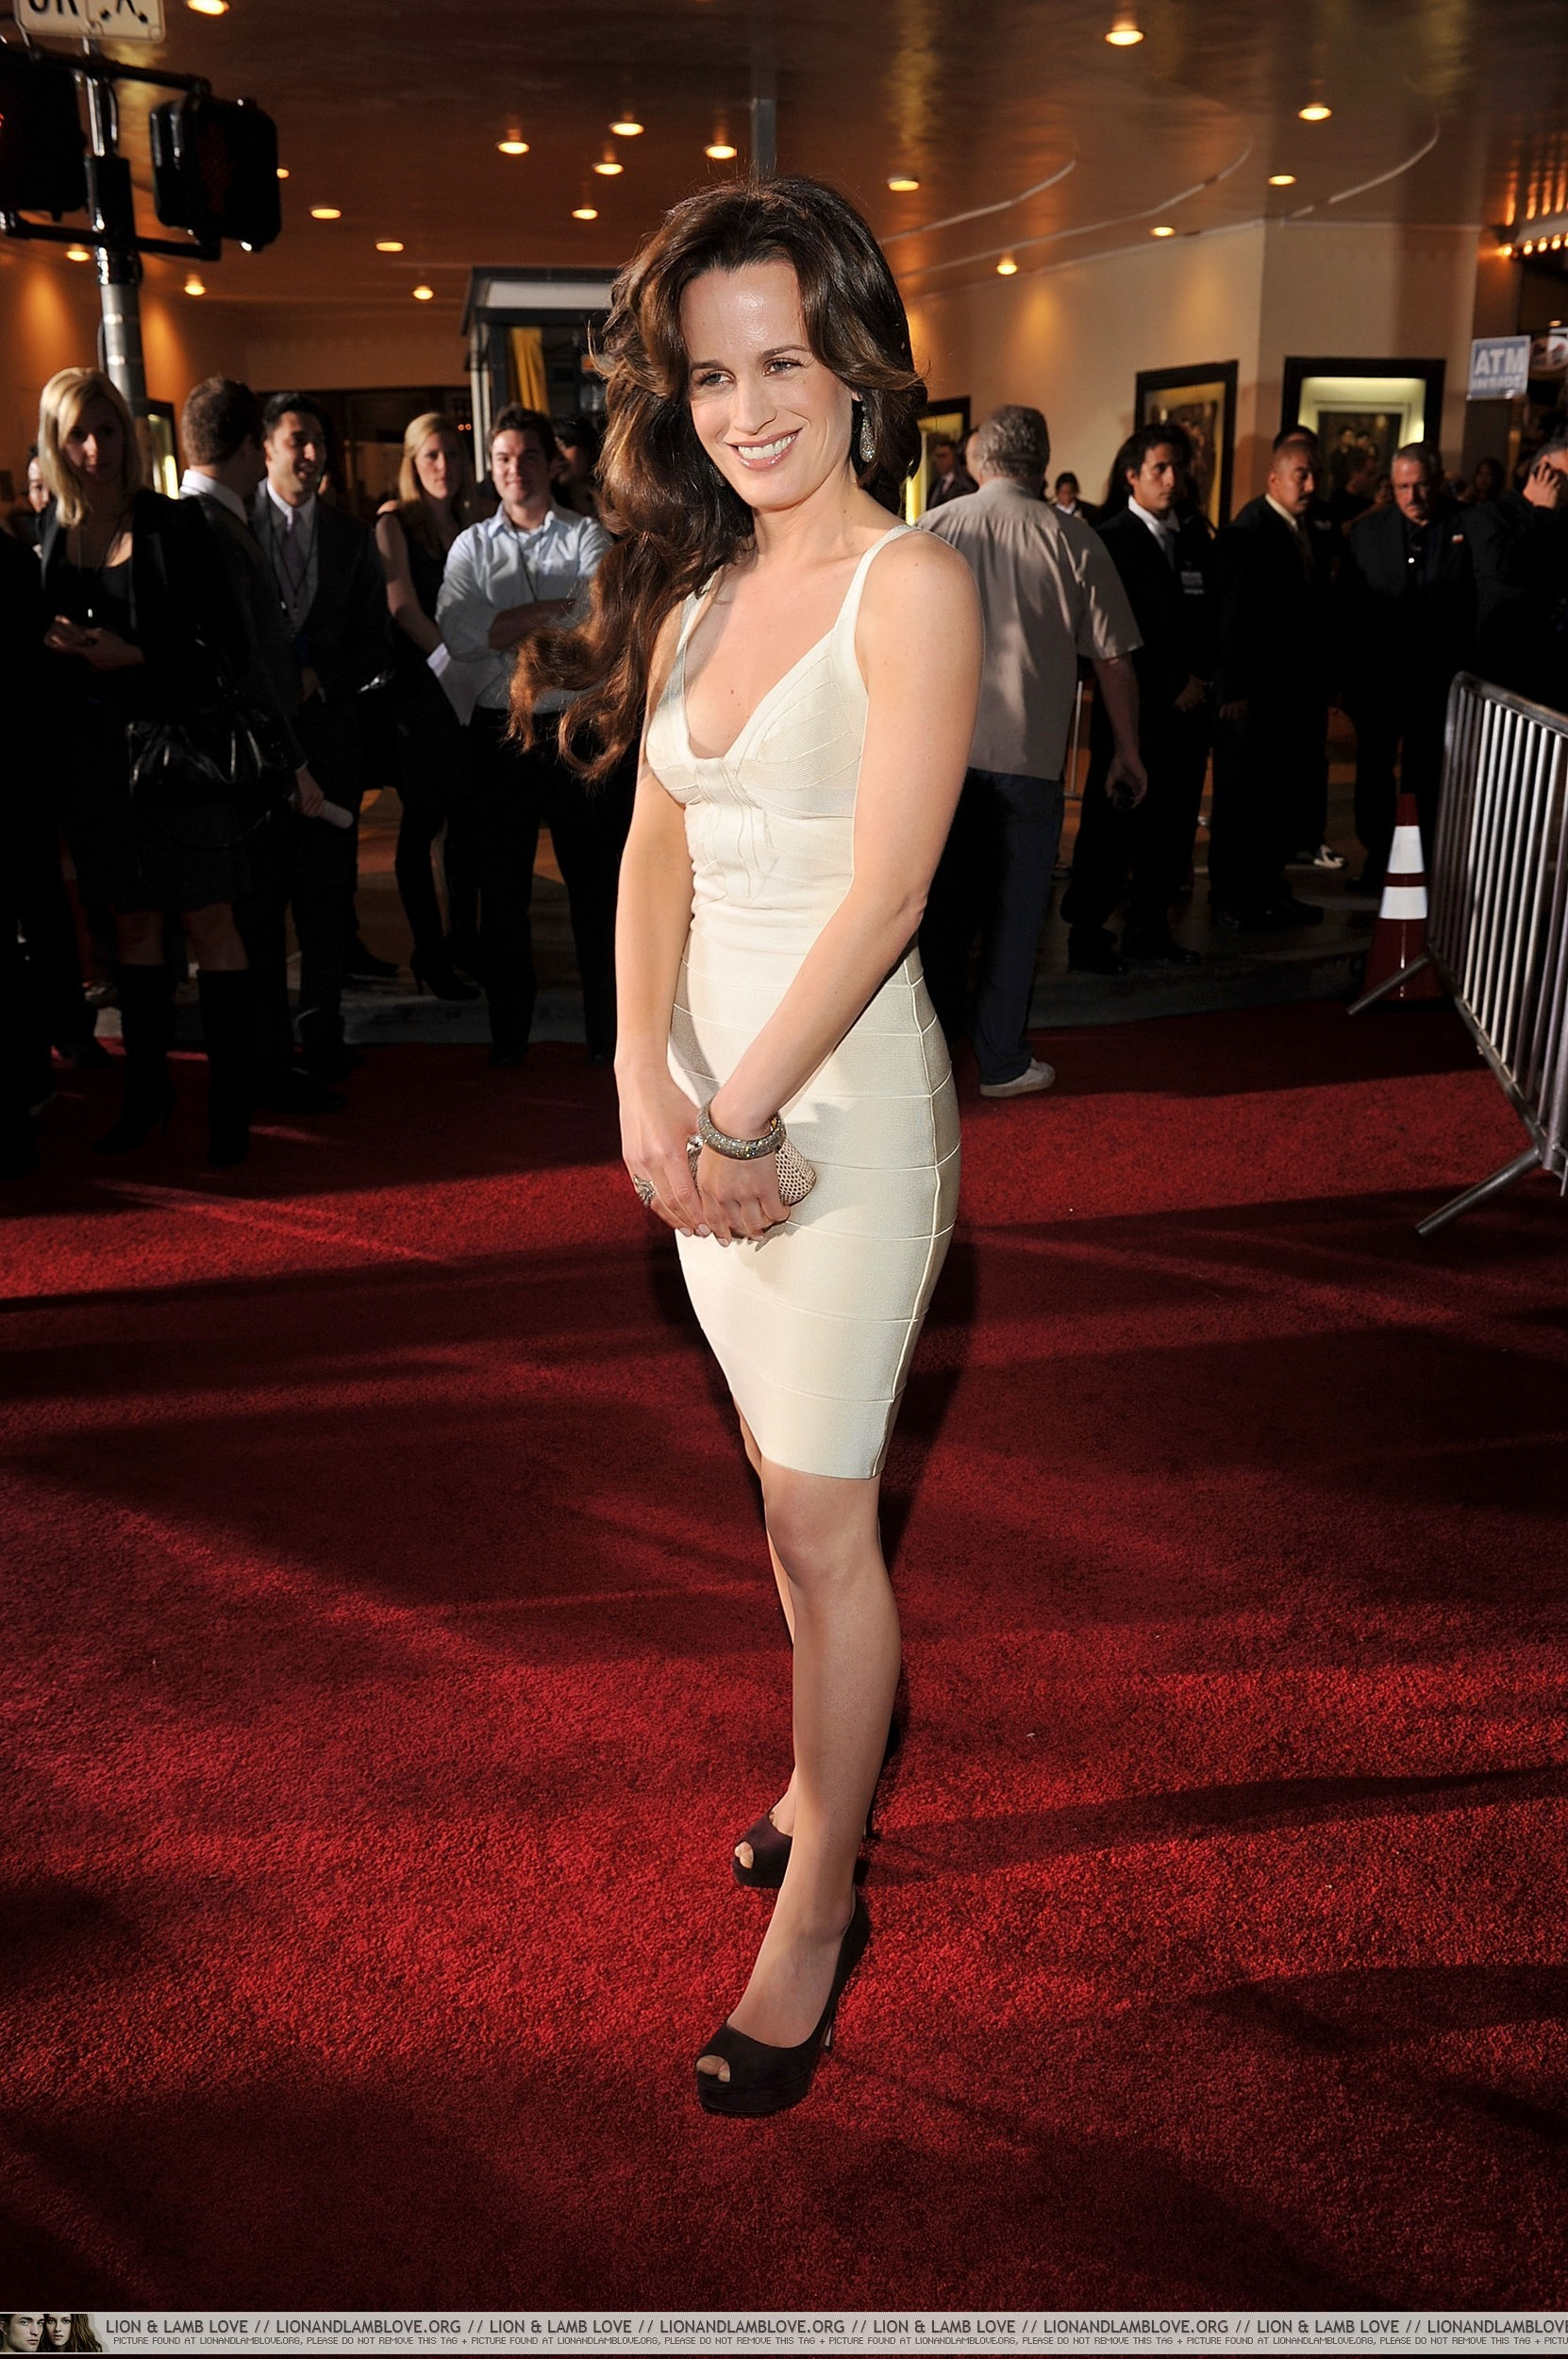 http://images2.fanpop.com/image/photos/9000000/Red-Carpet-twilight-series-9087274-1662-2500.jpg